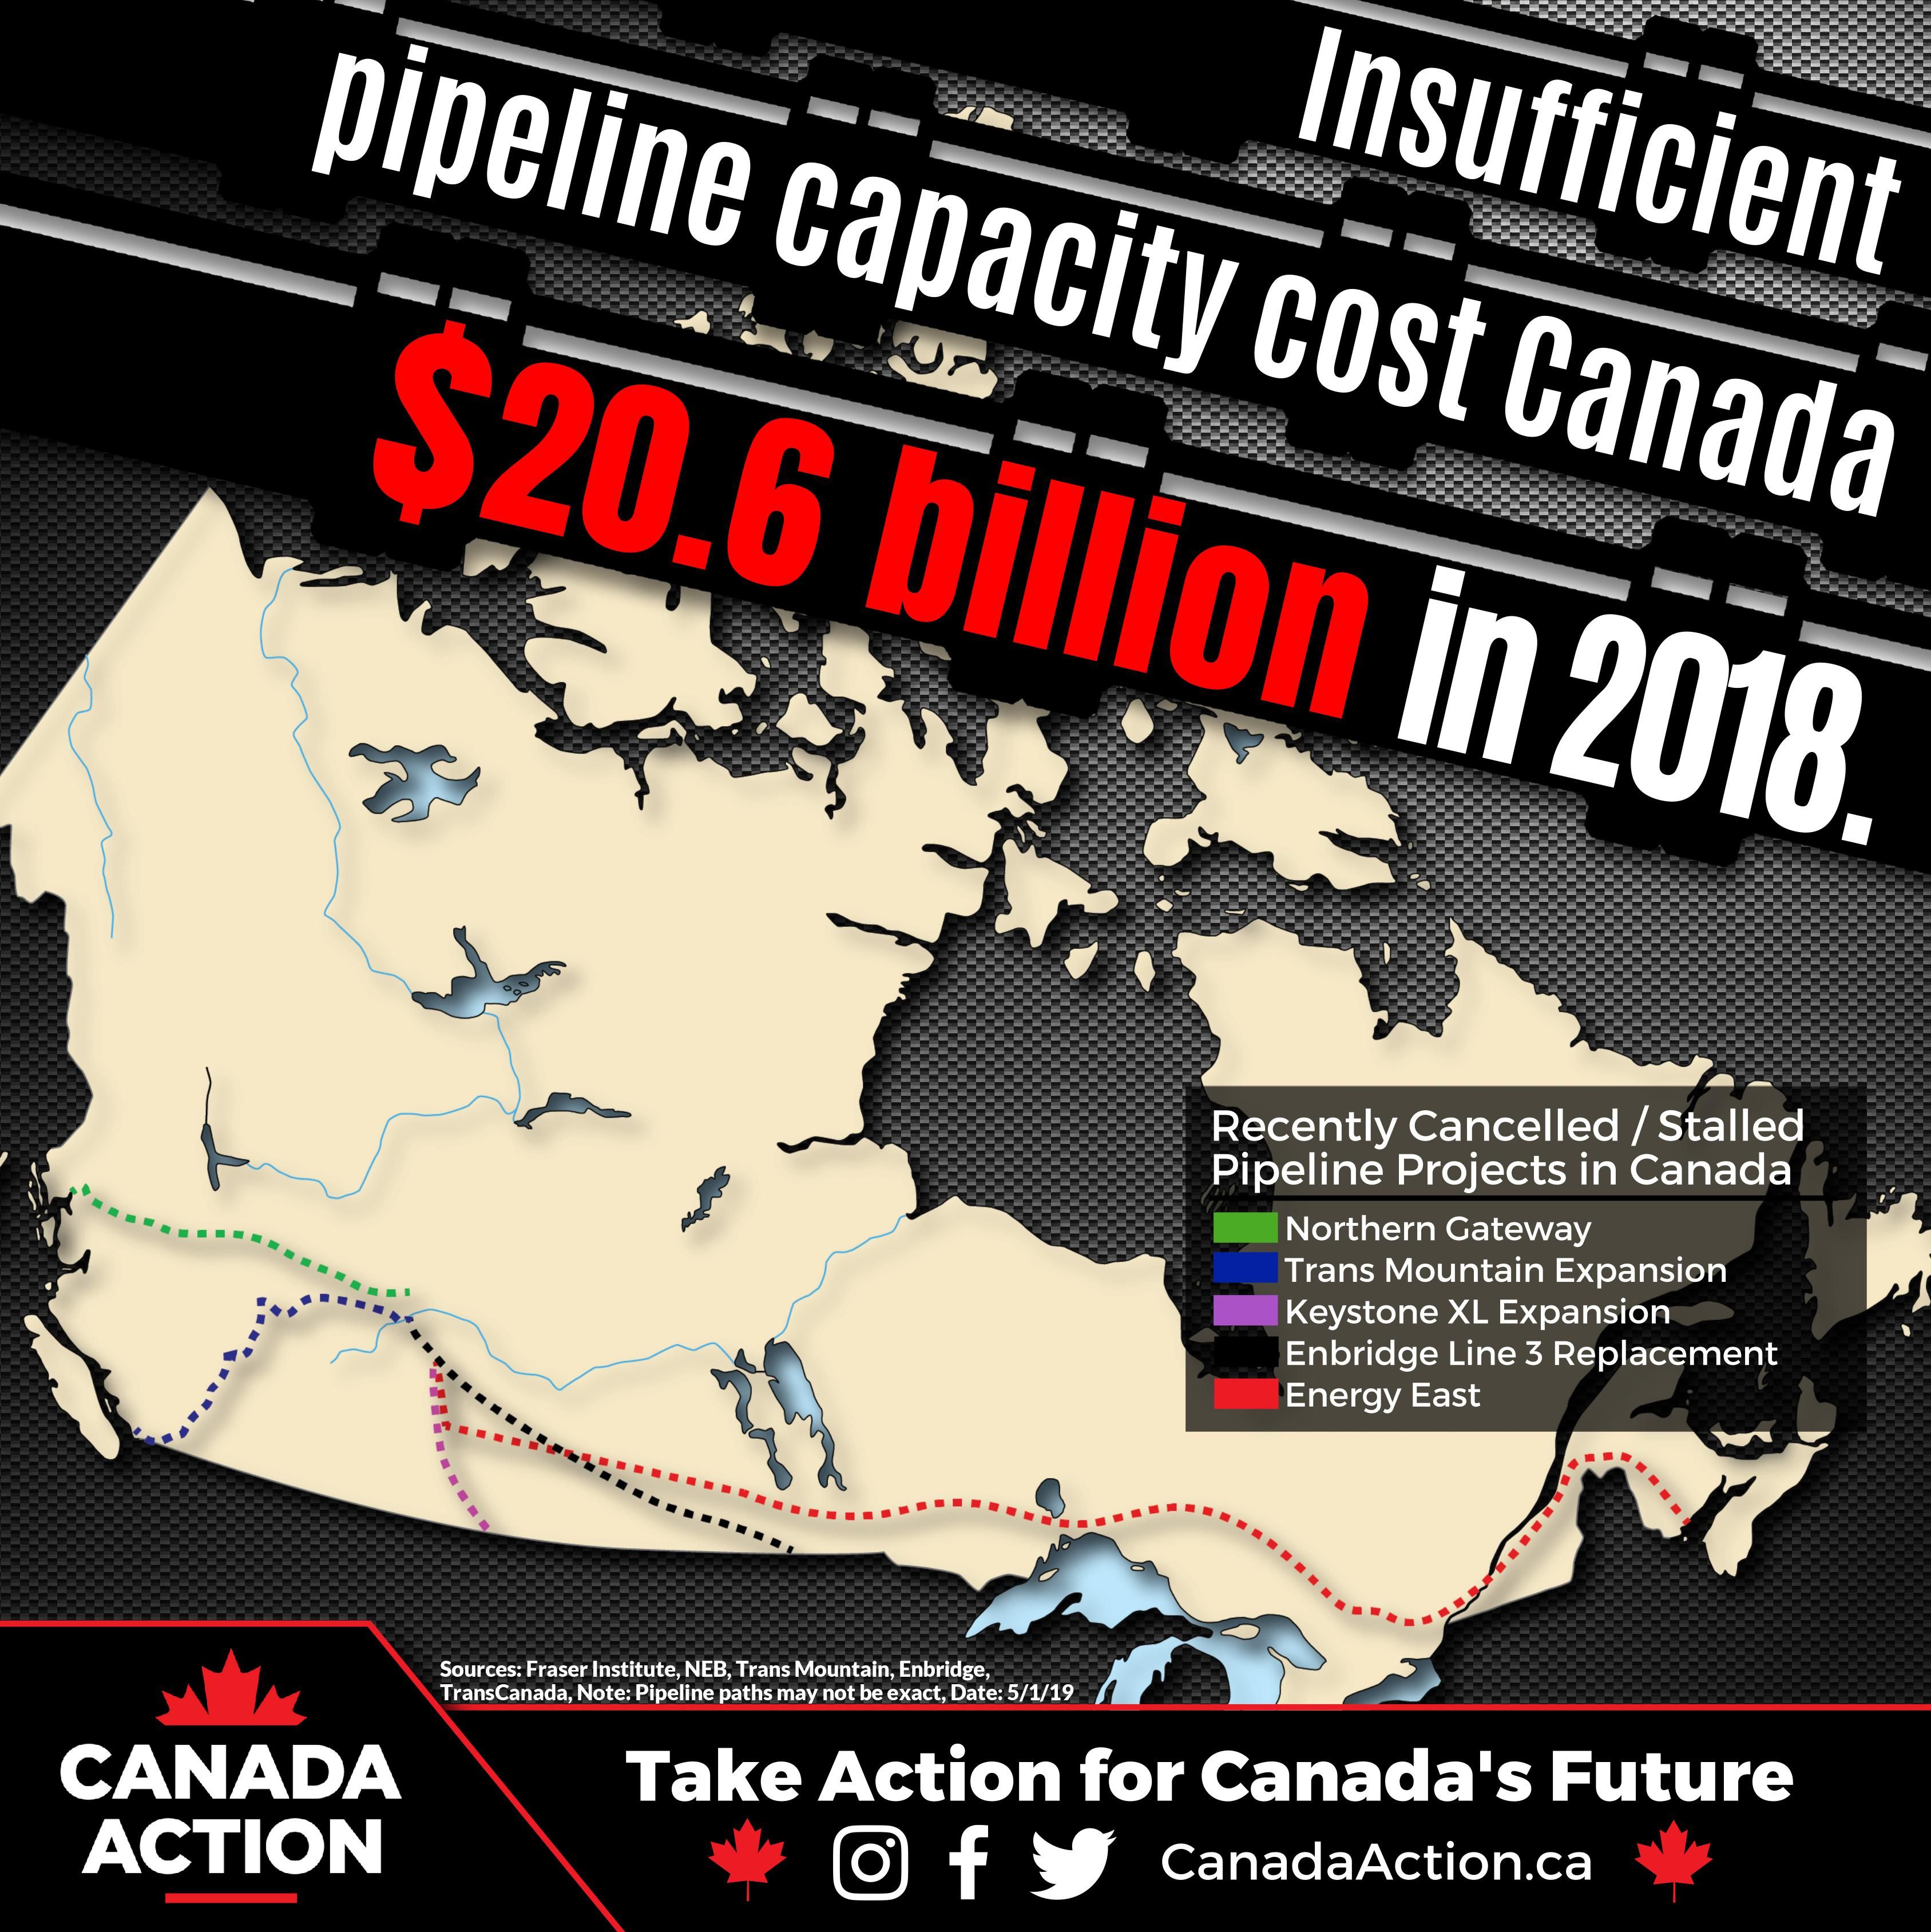 issuficient pipeline capacity cost canada 20.6 billion in 2018